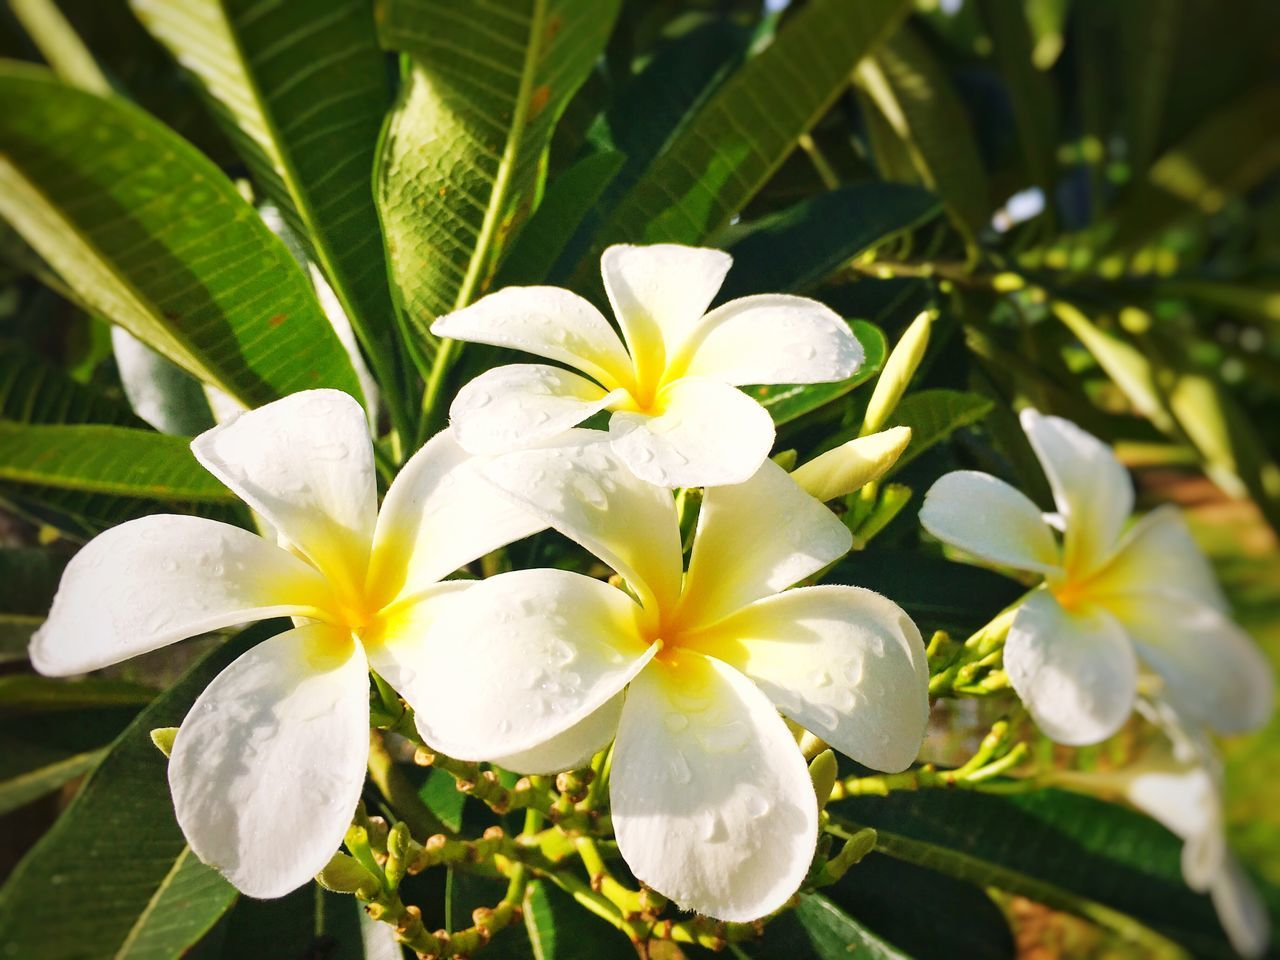 Flower Growth Beauty In Nature Petal Nature Leaf Plant Freshness Flower Head White Color Fragility Frangipani Blooming Close-up Day No People Outdoors Periwinkle Nature EyeEm Nature Lover EyeEm Gallery white flowerPlumeria Plumeria Flowers Plumeria White Freshness Neon Life EyeEm Selects EyeEmNewHere